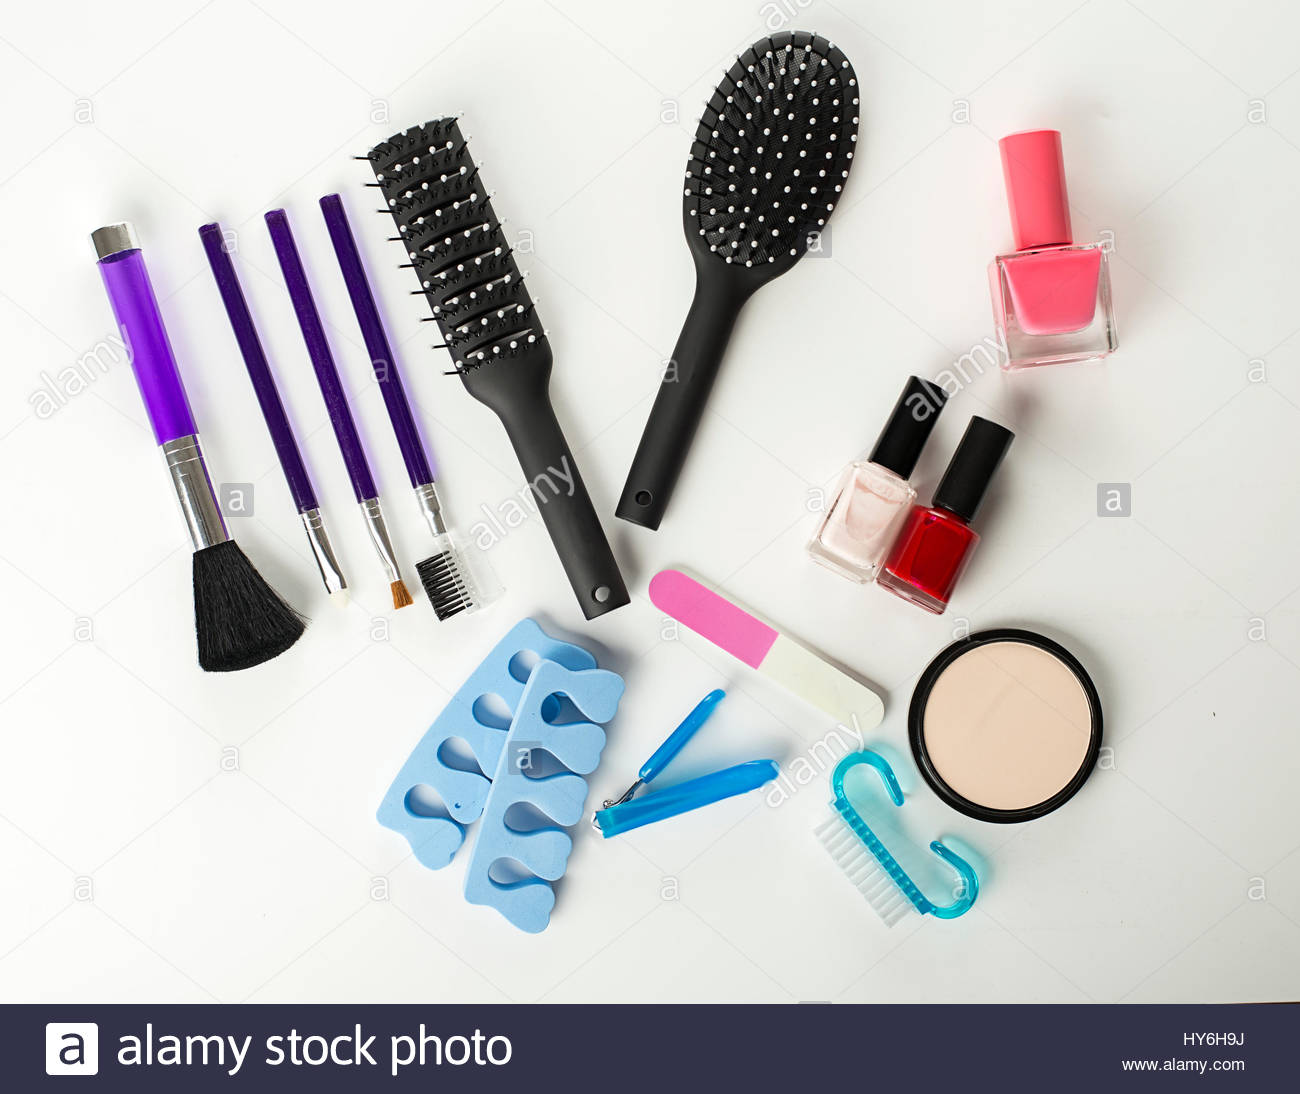 Tools for manicure, nail painting, makeup and hair styling Stock ...